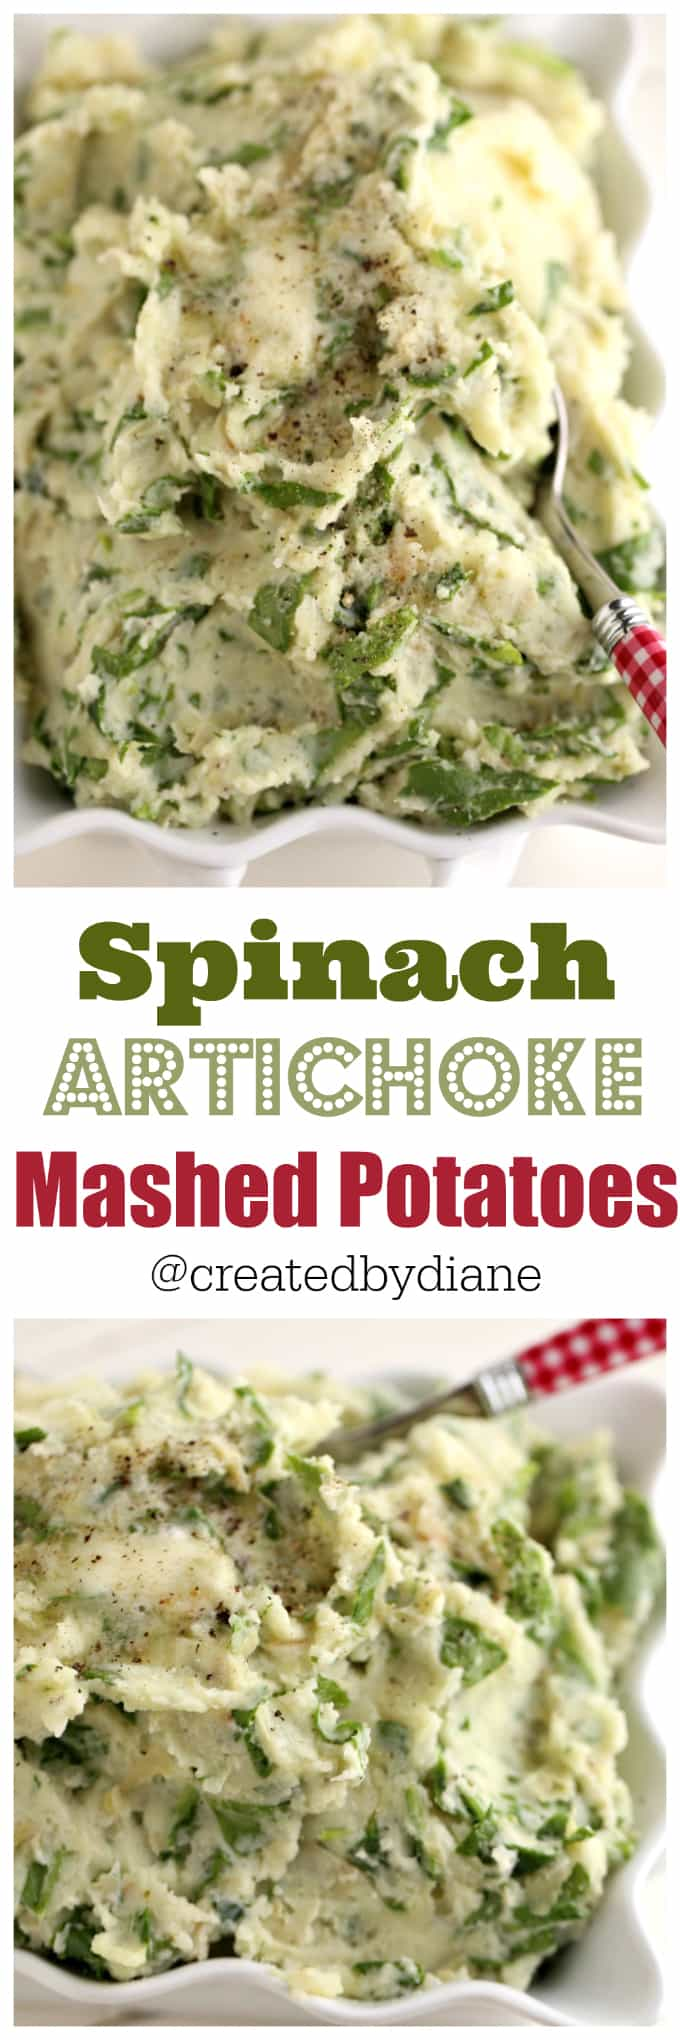 spinach-and-artichoke-mashed-potatoes-with-garlic-and-onions-createdbydiane